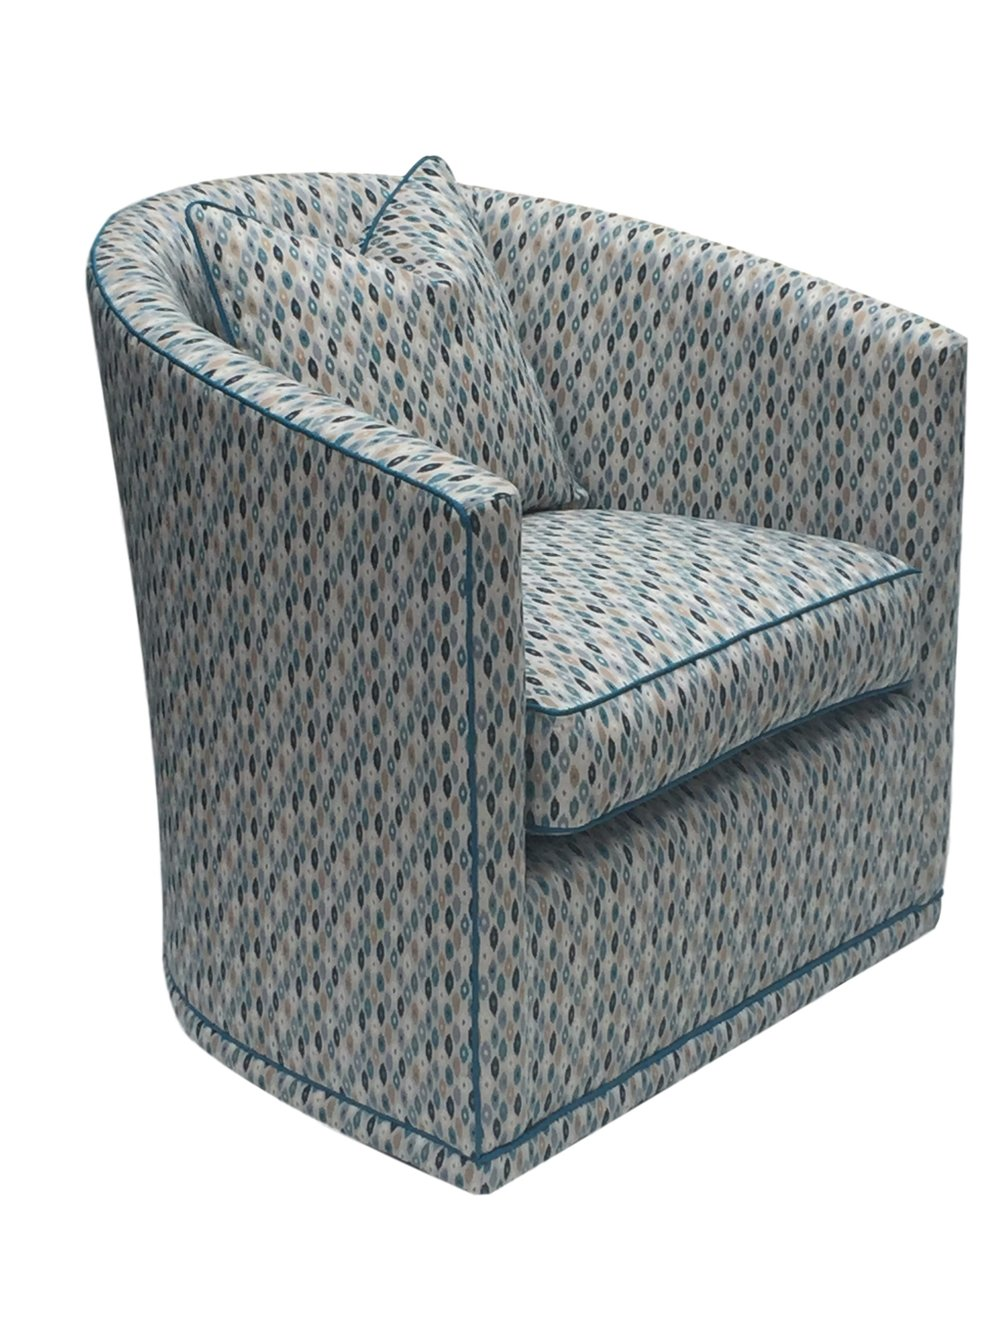 Savoy chair with no showwood and banded base